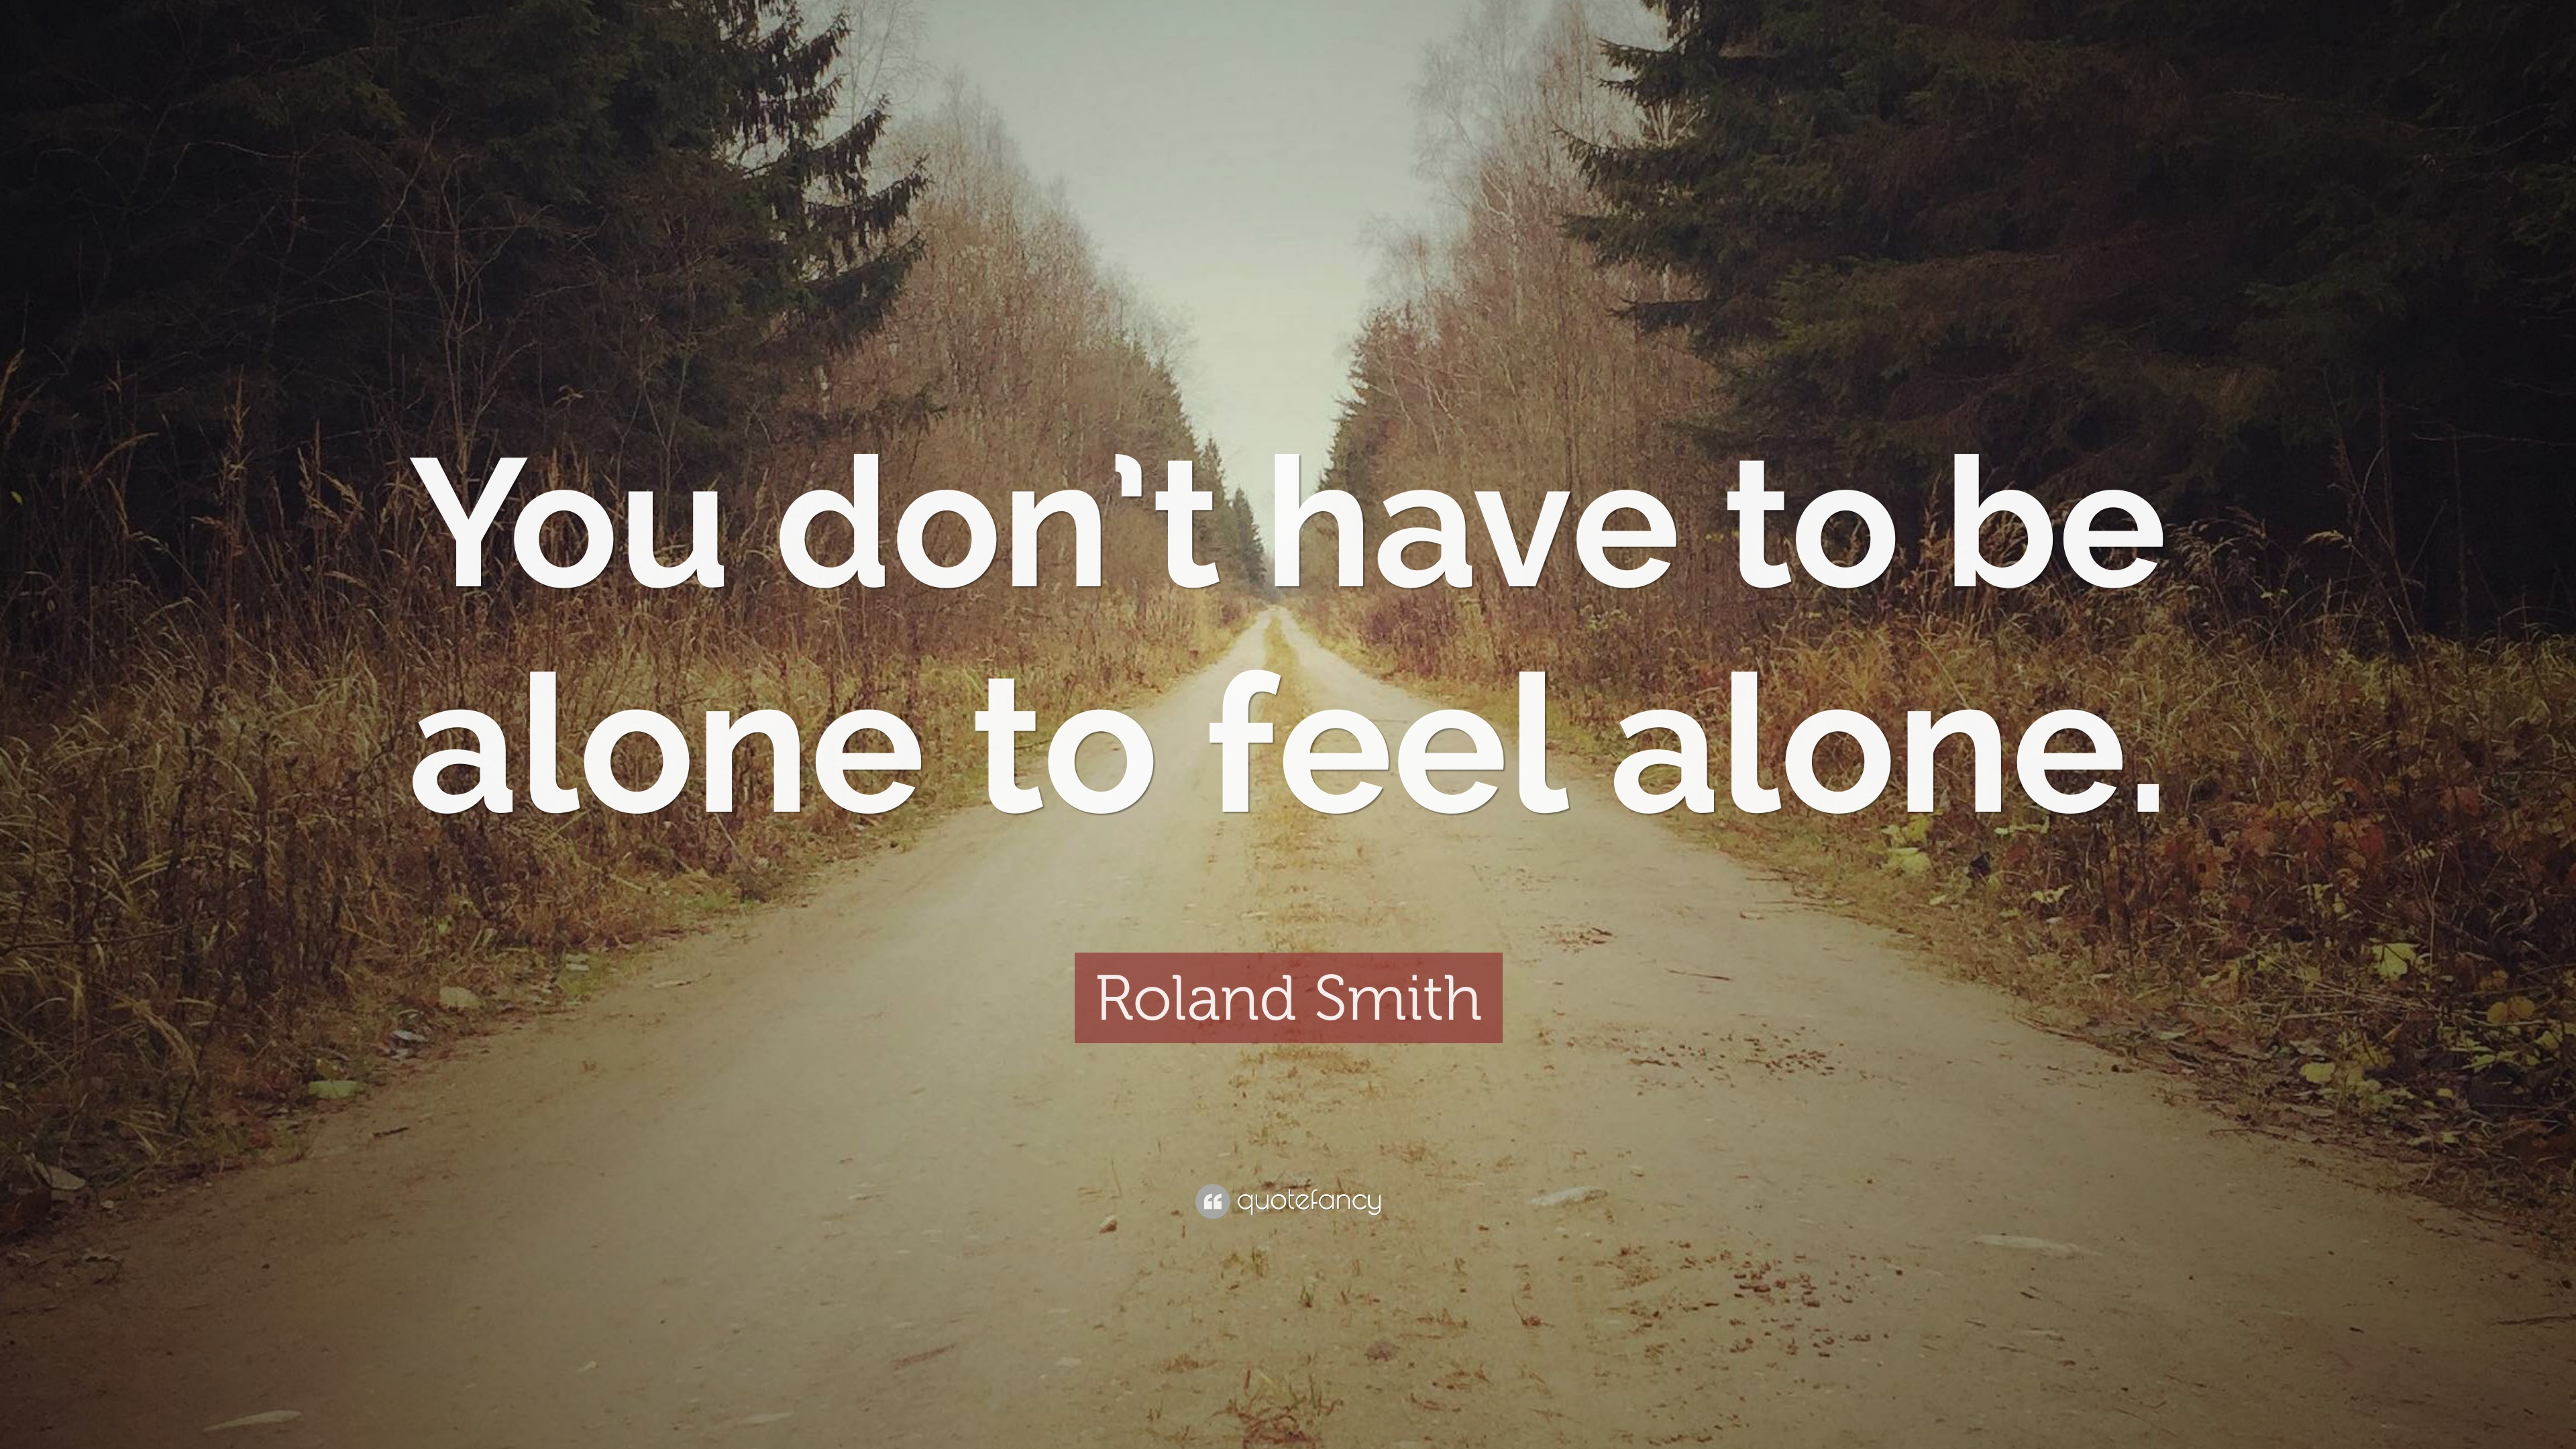 Roland Smith Quote You Dont Have To Be Alone To Feel Alone 9